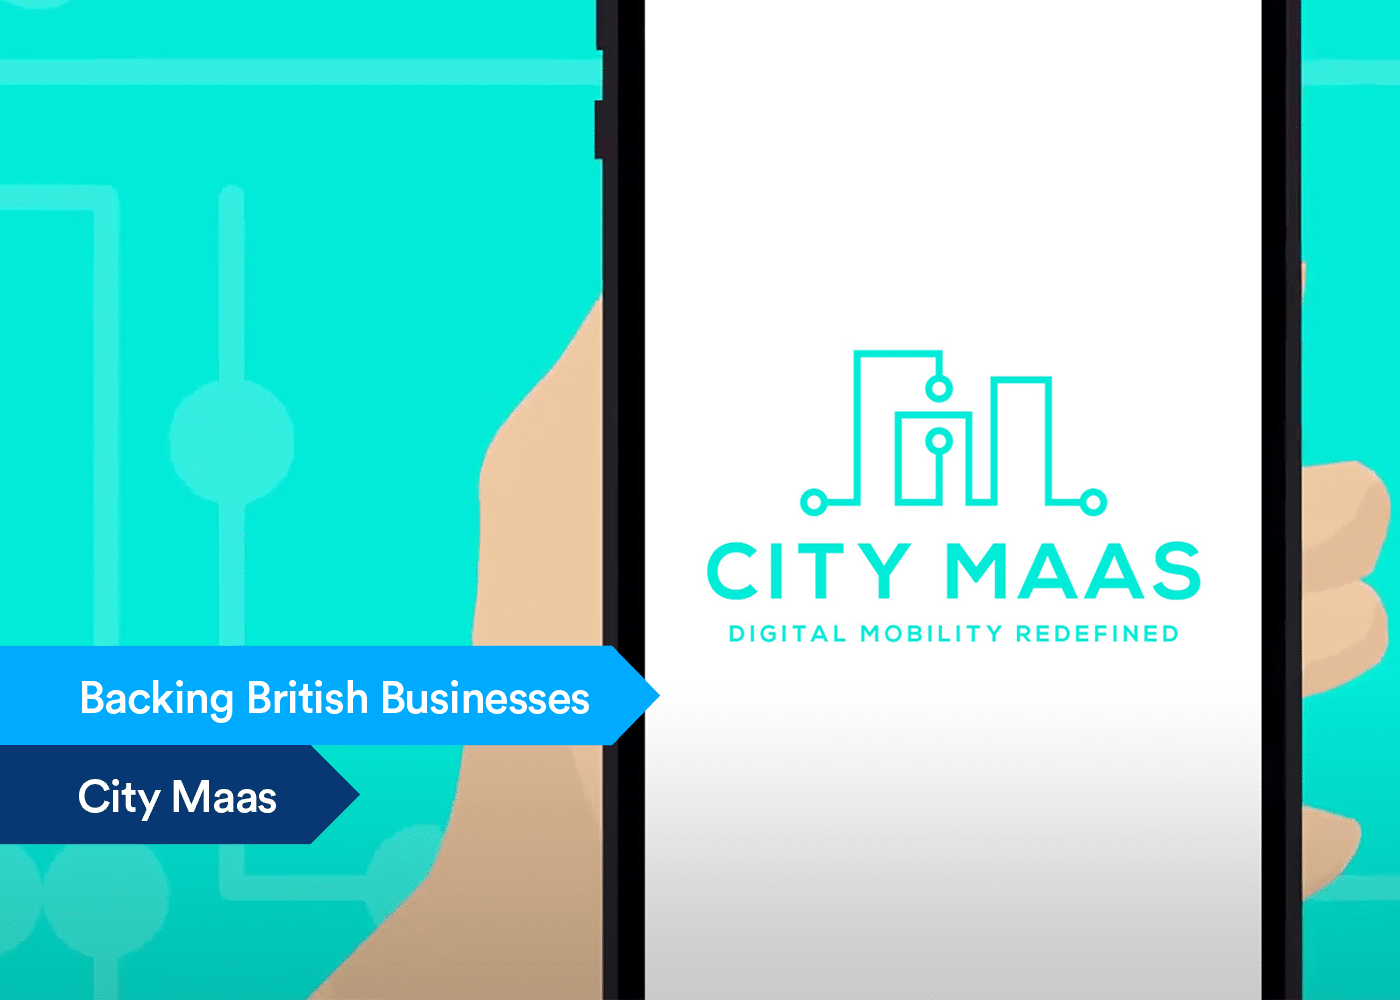 Backing British Businesses - CityMaas